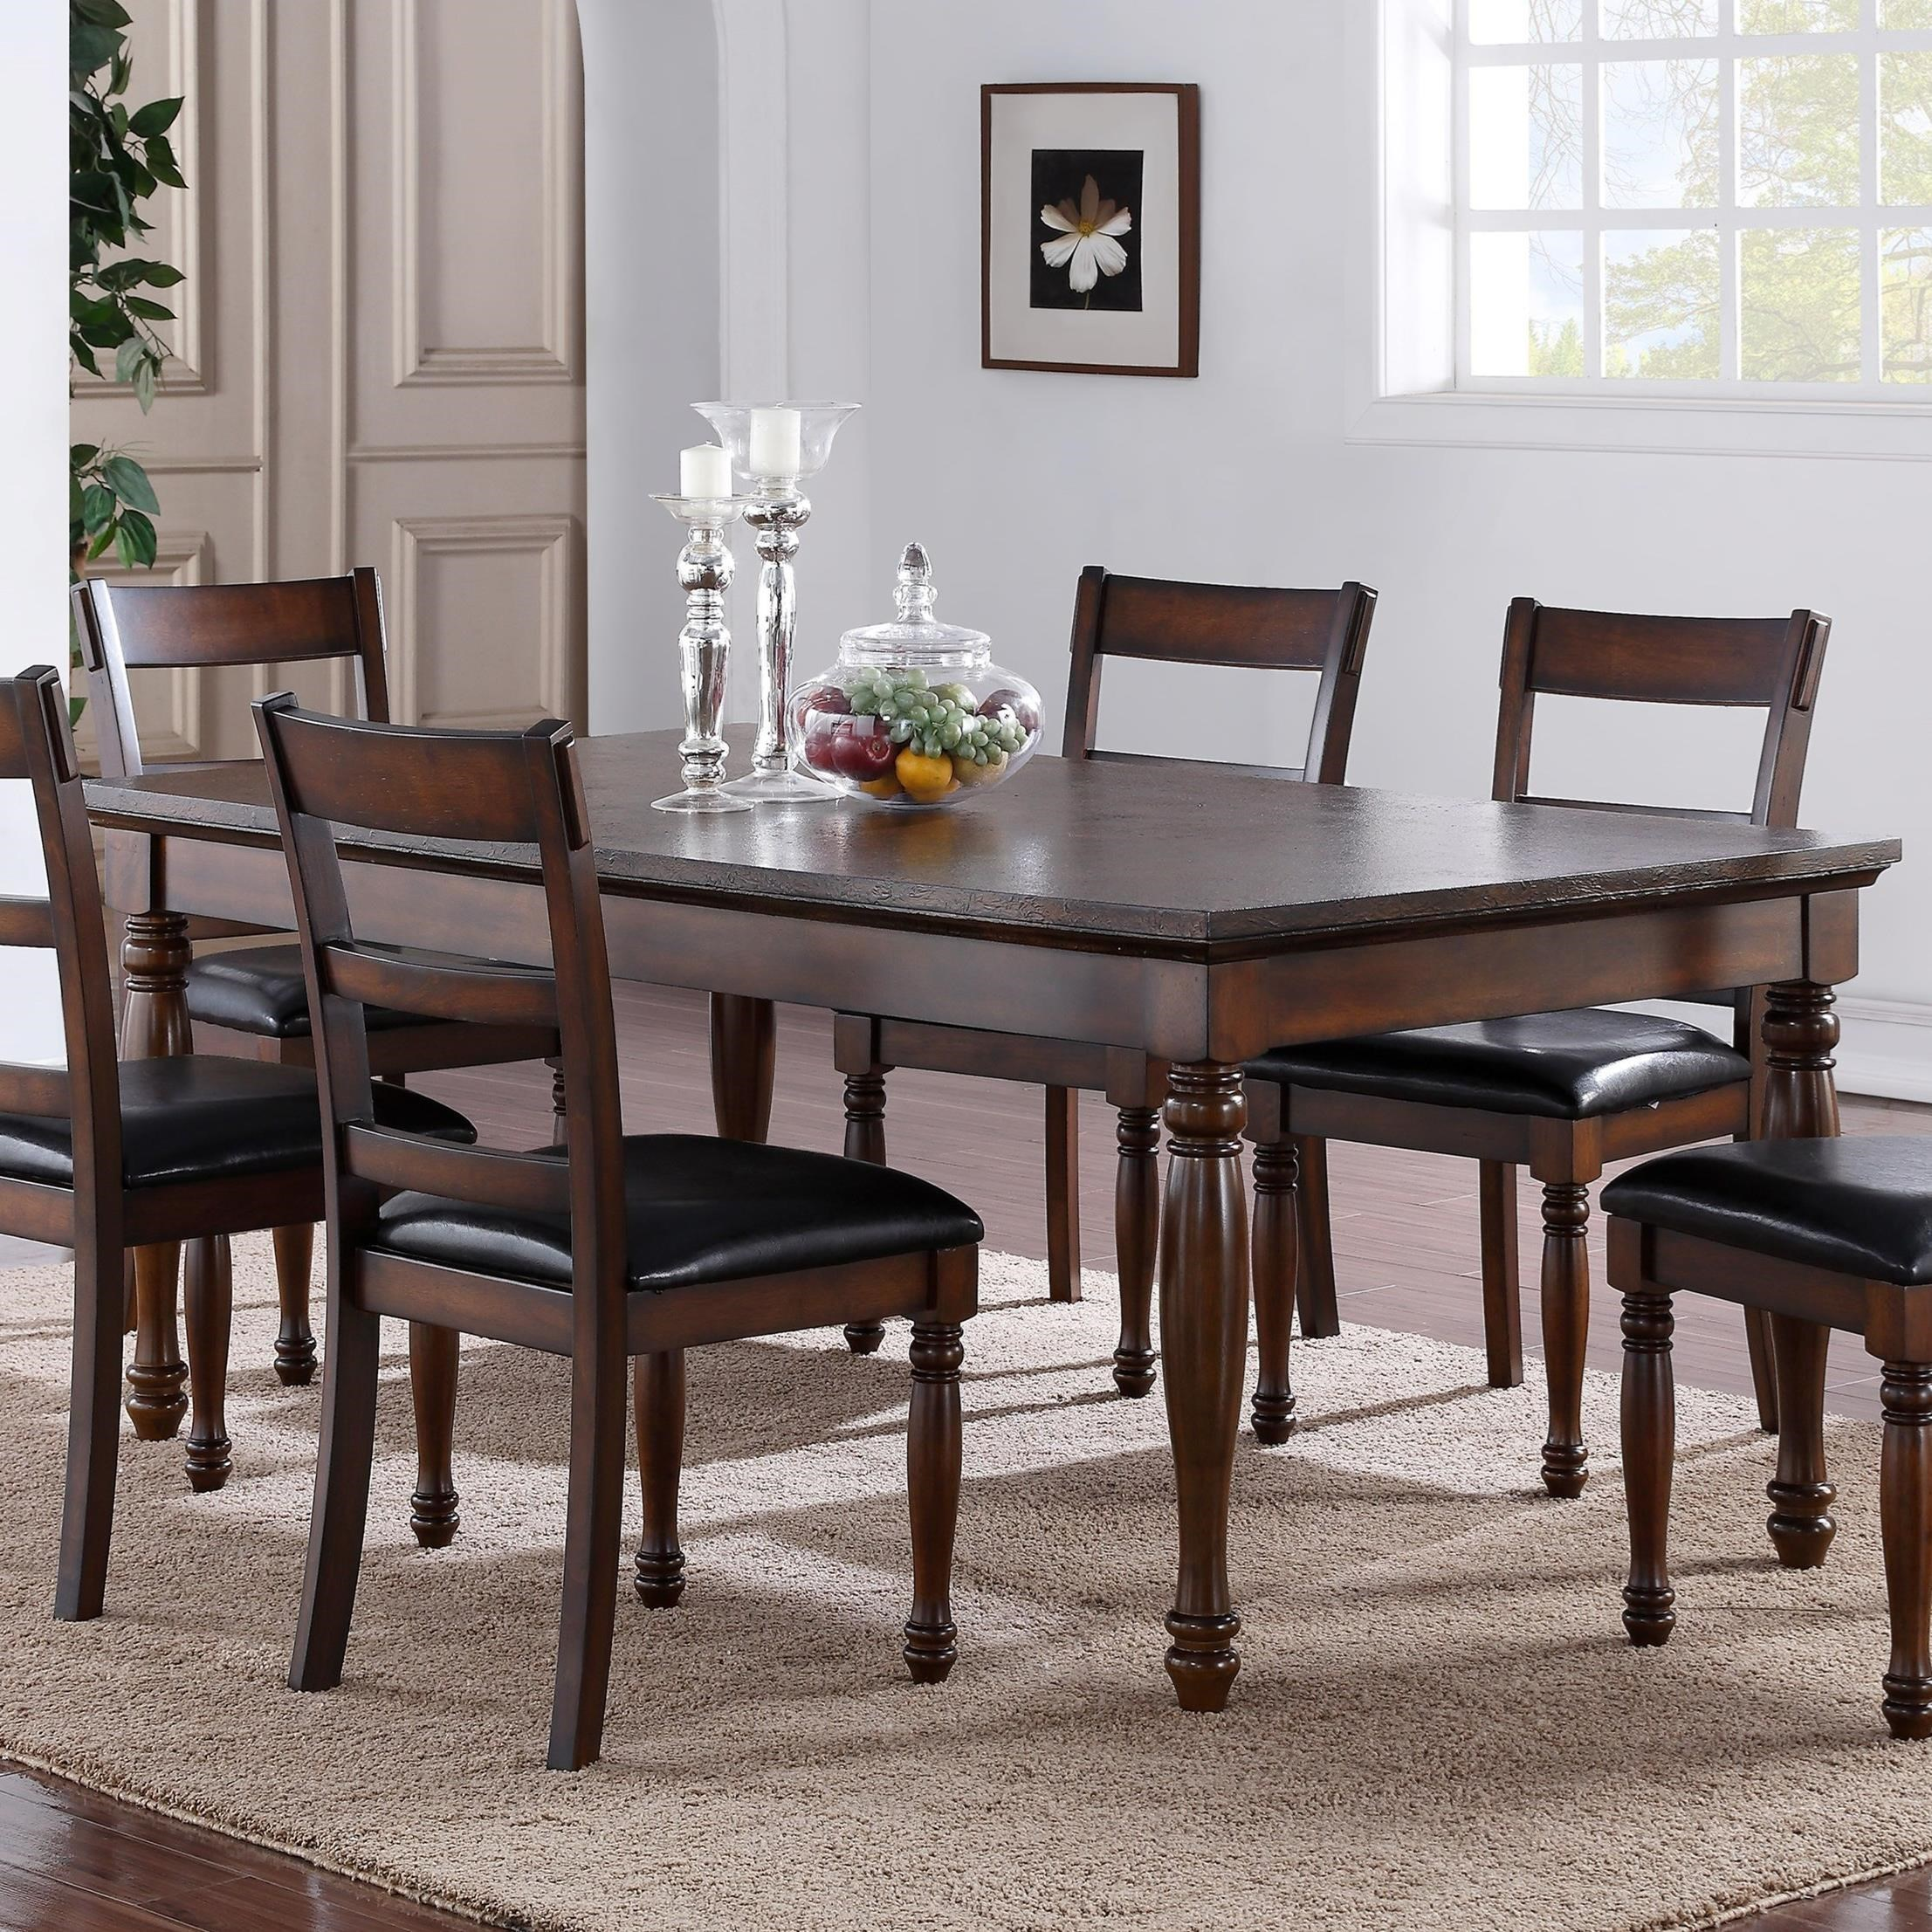 Etonnant Legends Furniture BreckenridgeBreckenridge Dining Table ...